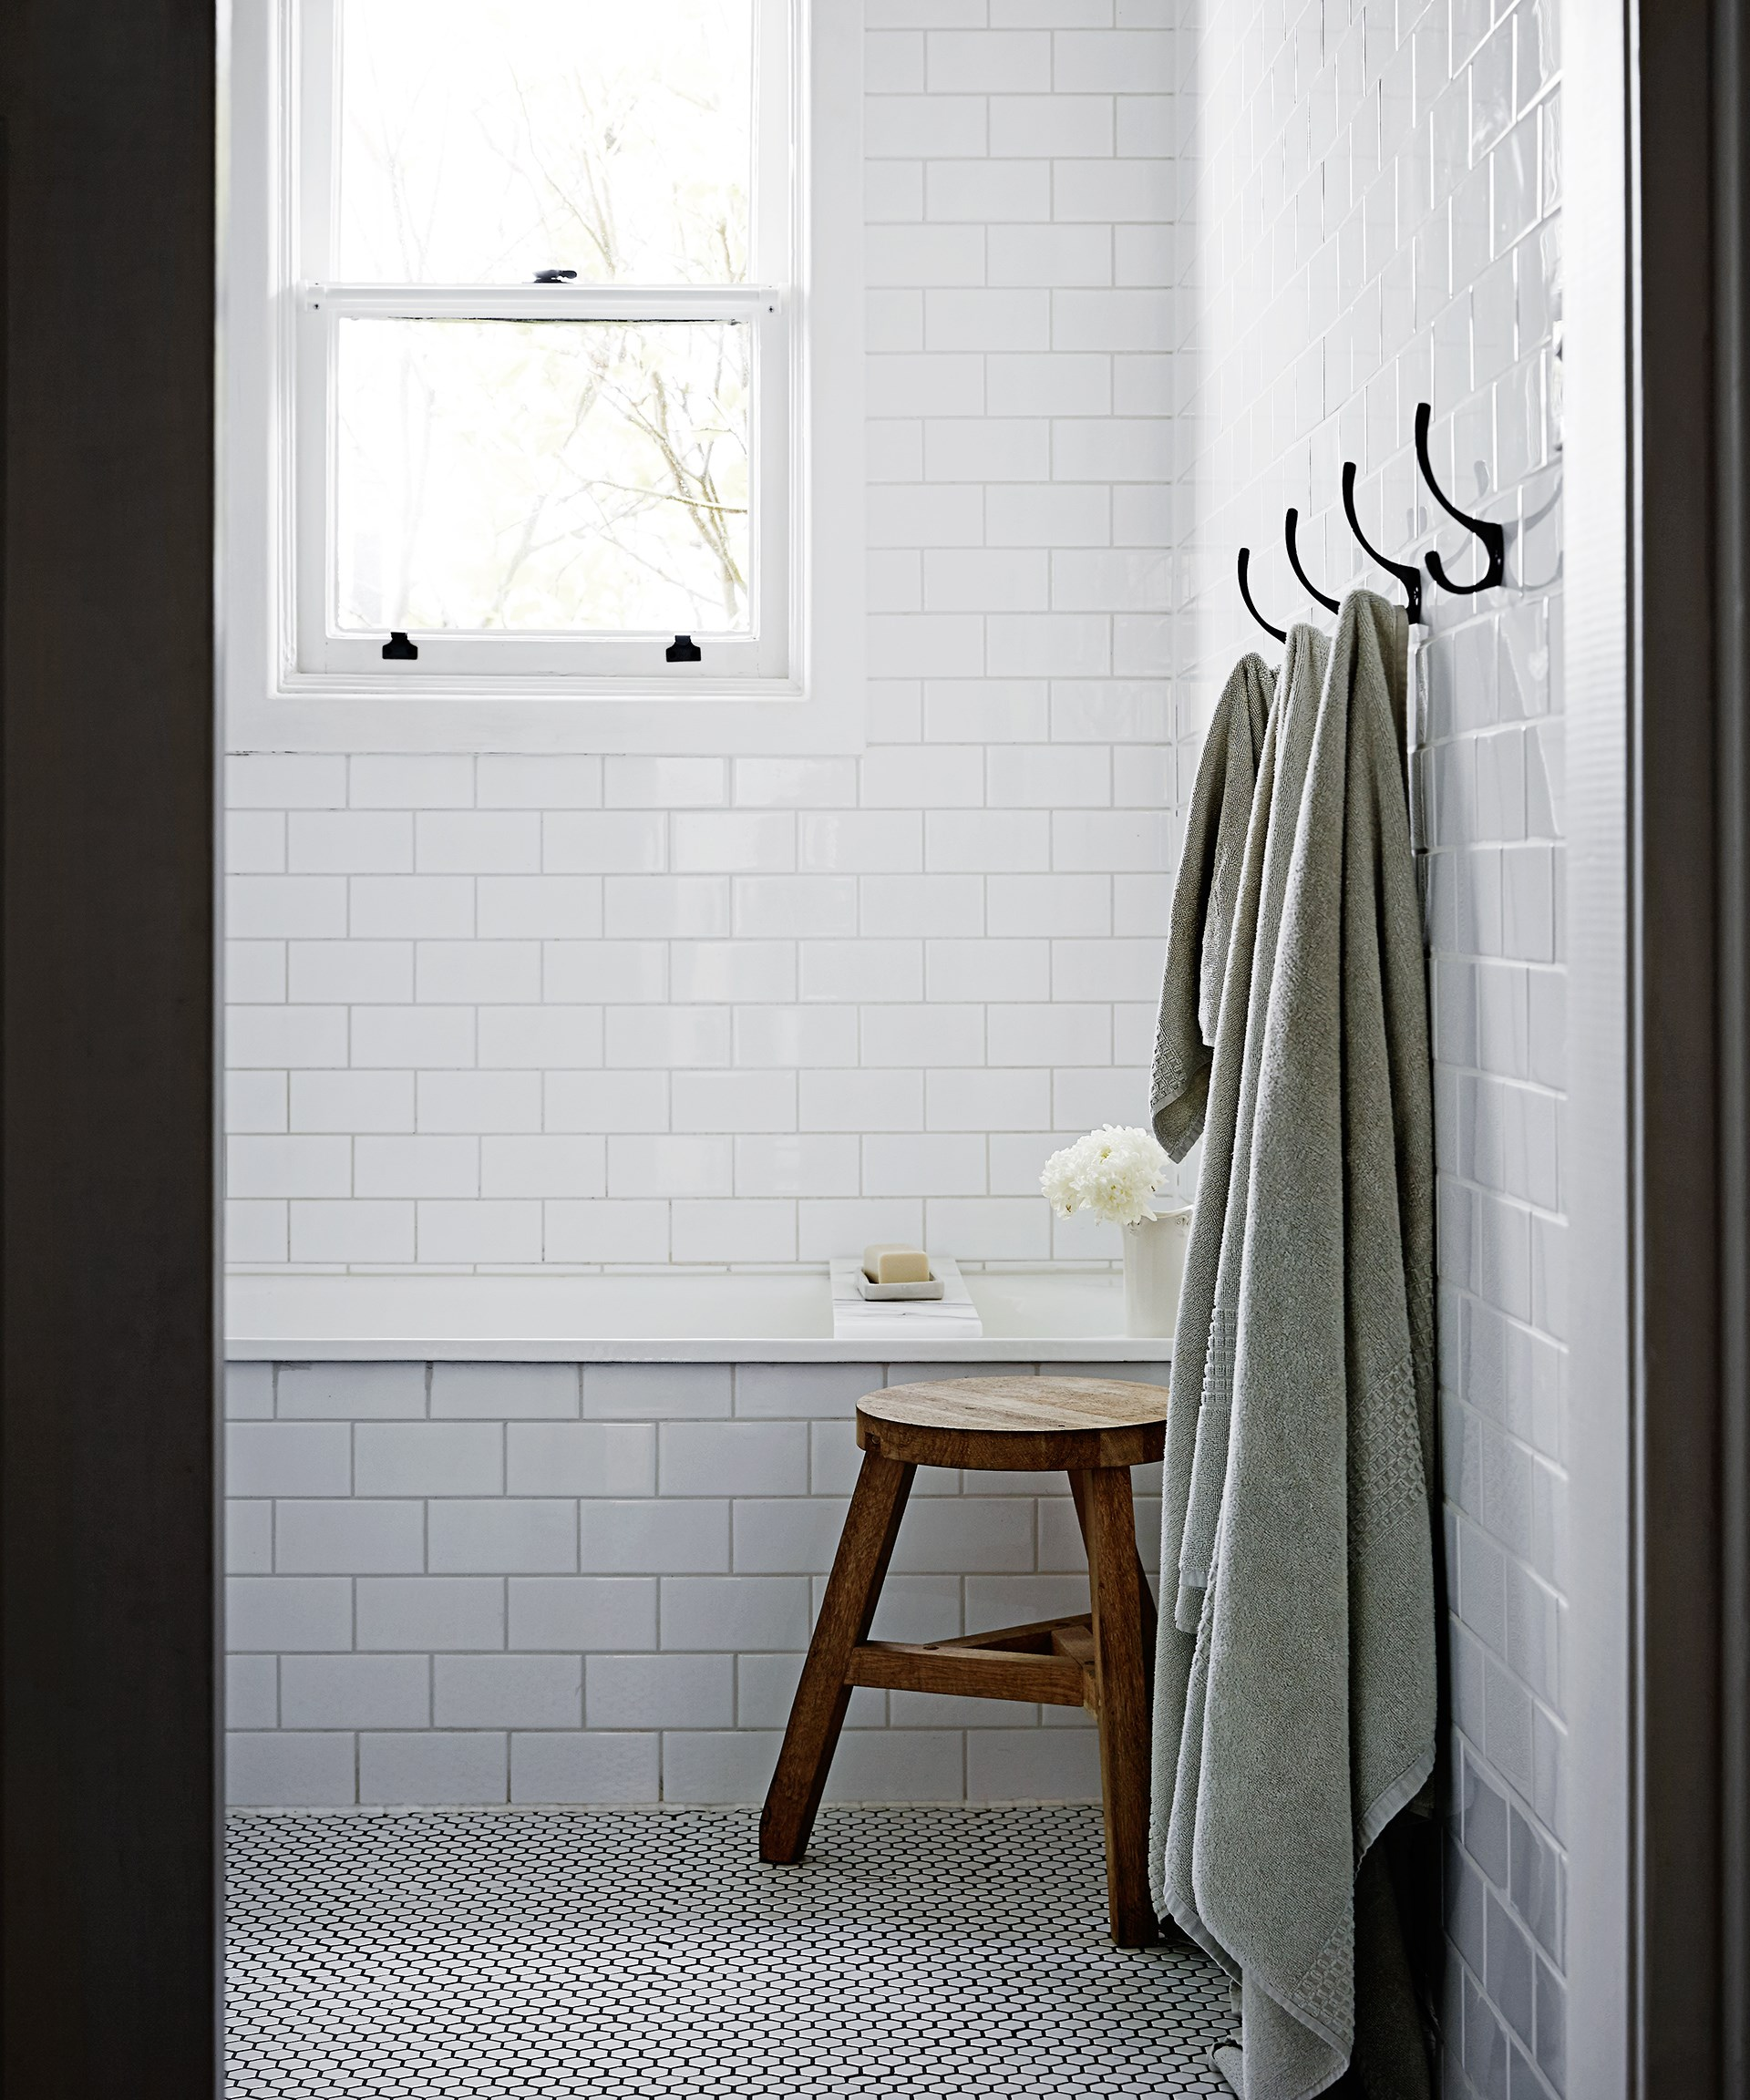 The original cast-iron bath was kept and refinished to retain the heritage charm of this [mid-century modern Melbourne home](http://www.homestolove.com.au/gallery-matt-and-rhiannons-mid-century-modern-home-1966). Photo: Sharyn Cairns